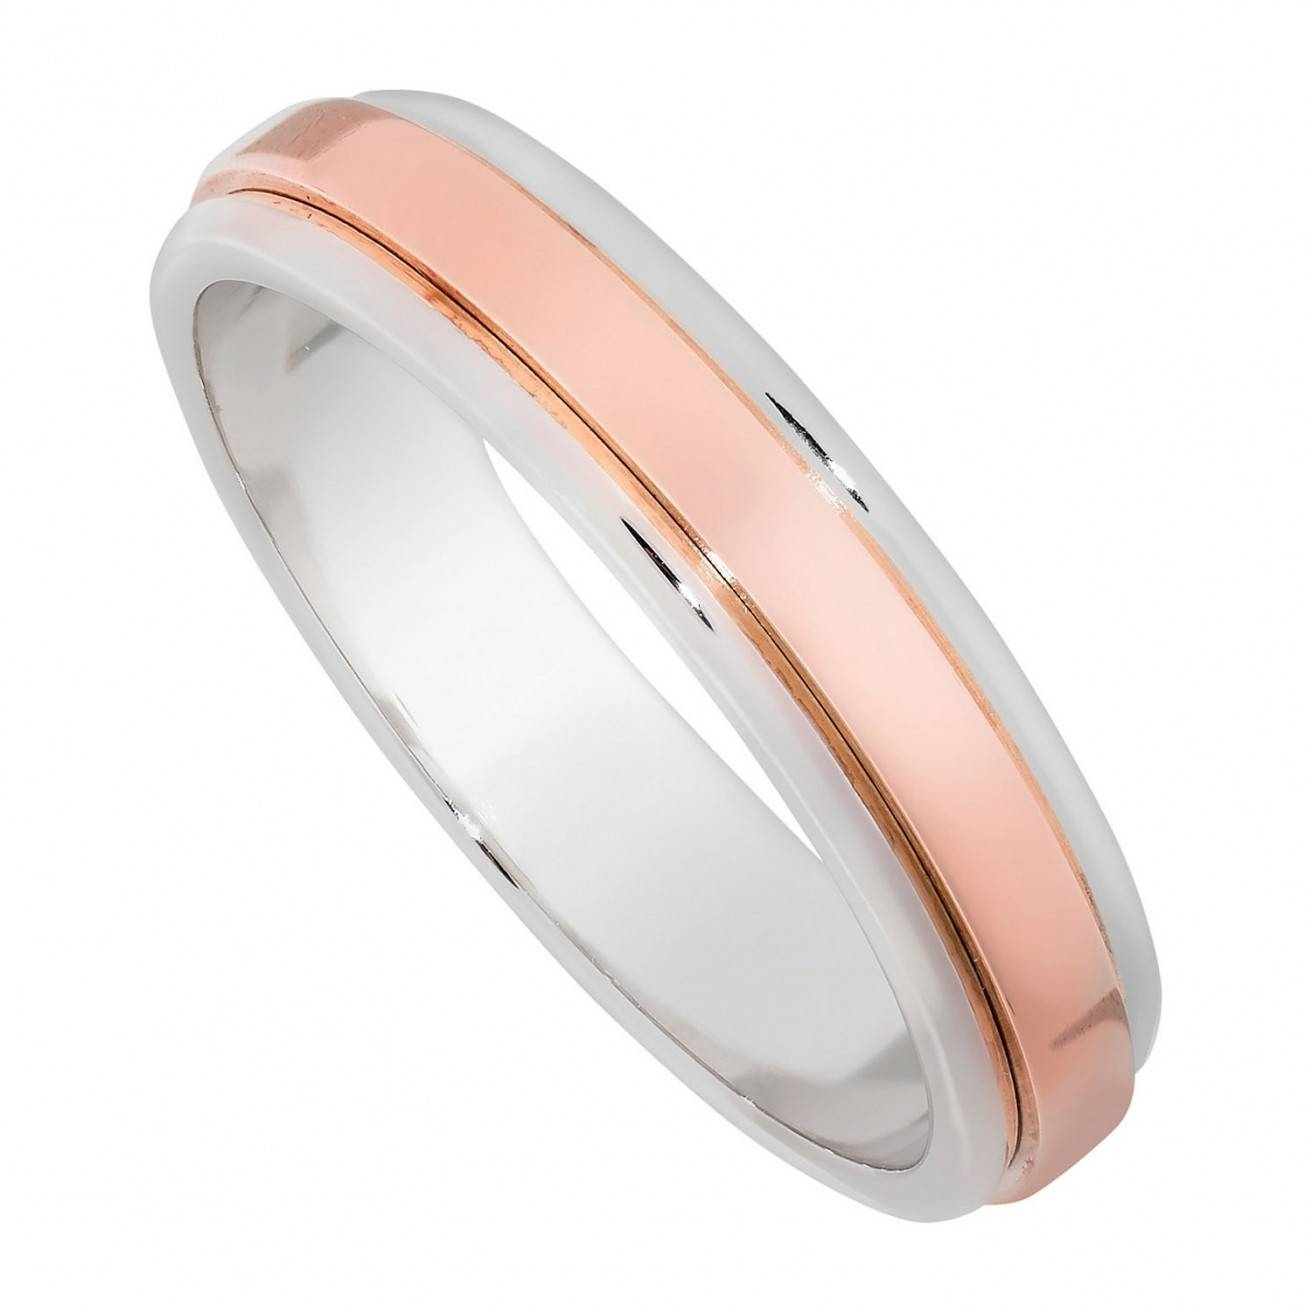 Buy Rose Gold Wedding Rings Online – Fraser Hart With Rose And White Gold Wedding Rings (View 2 of 15)